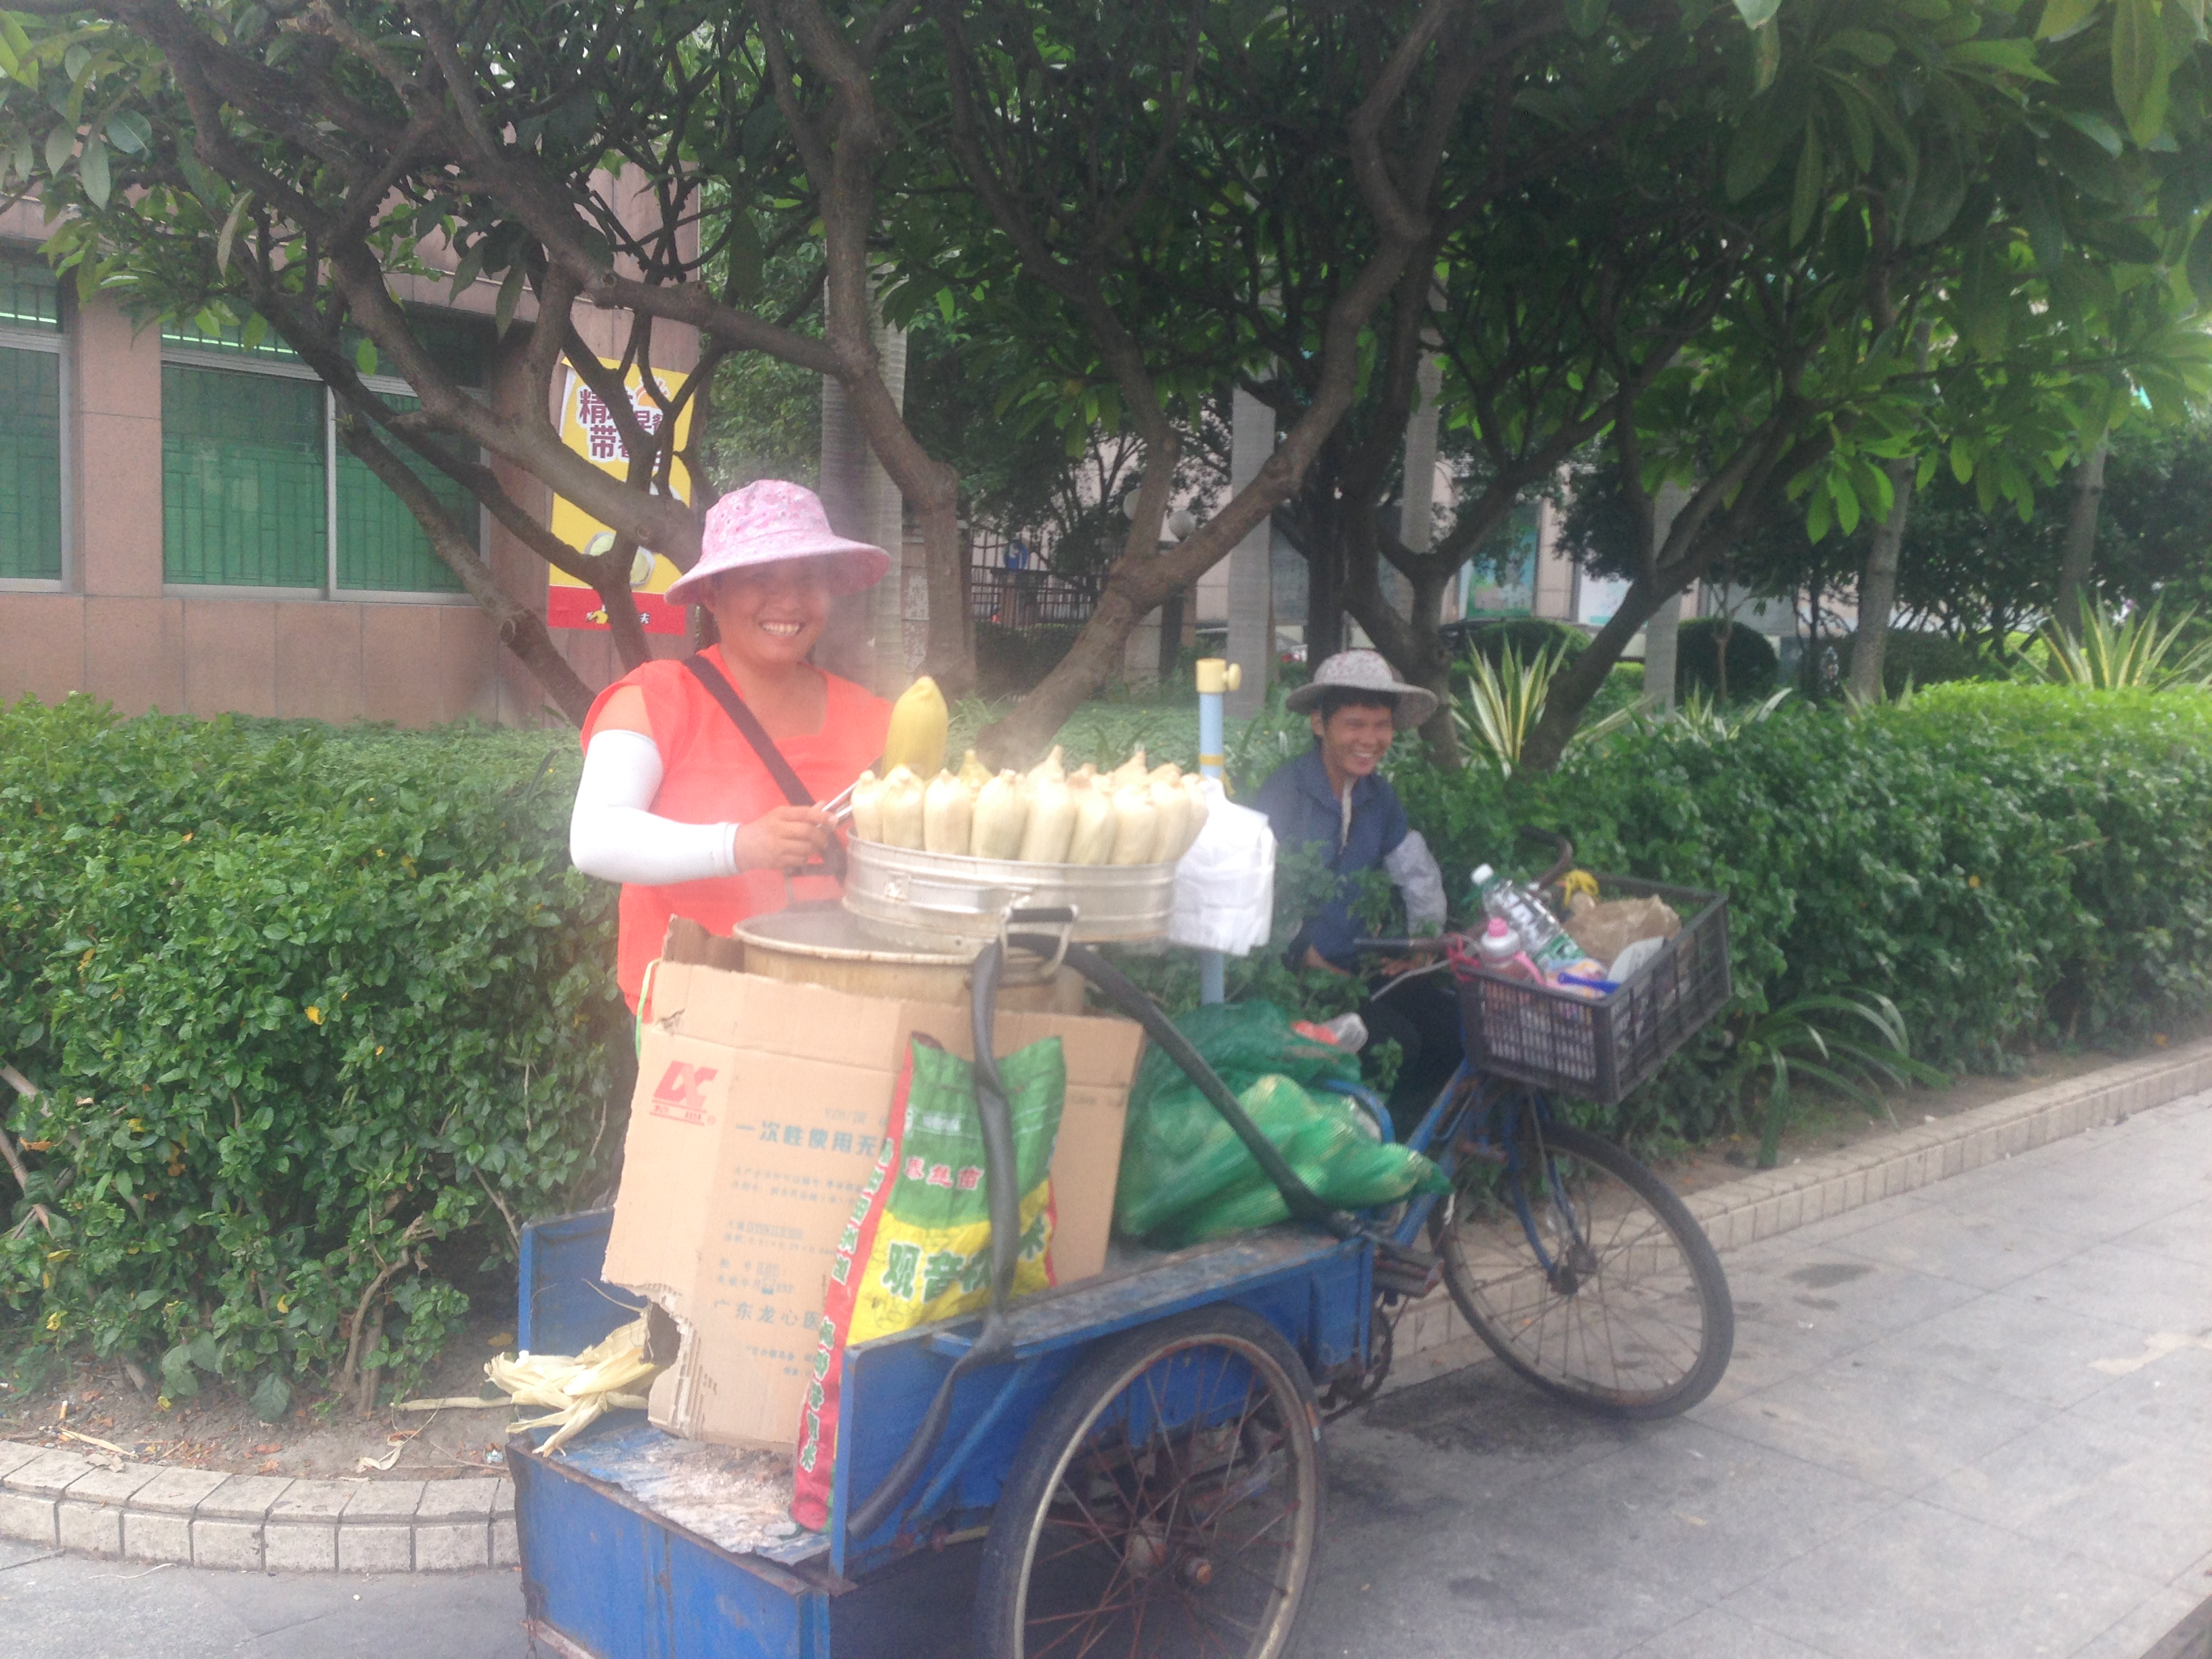 A fruit seller at a stall in Foshan, China